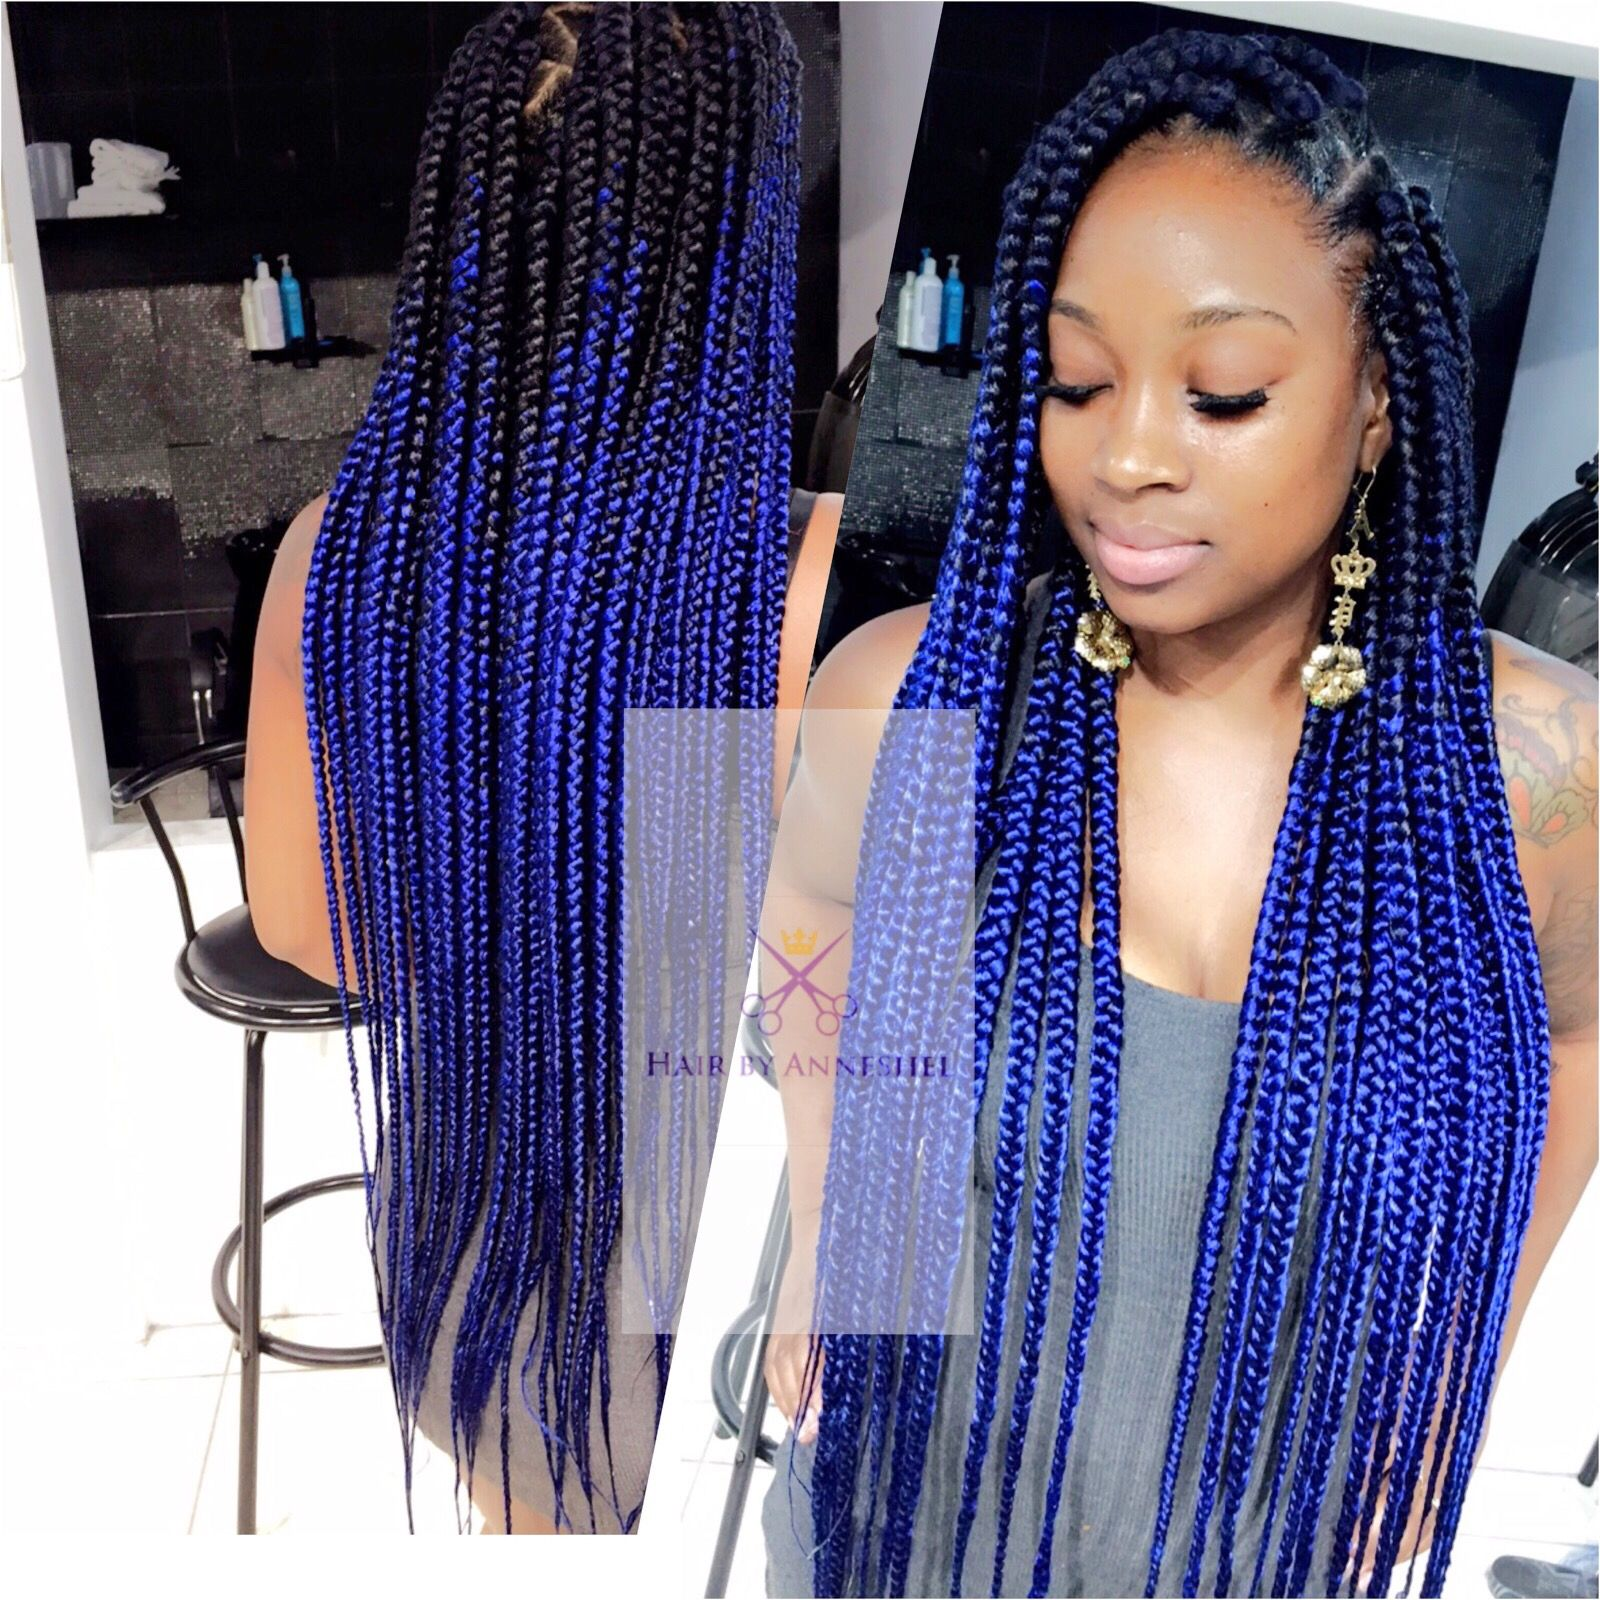 Pin By Hair By Anneshel On Braids With Images Blue Box Braids